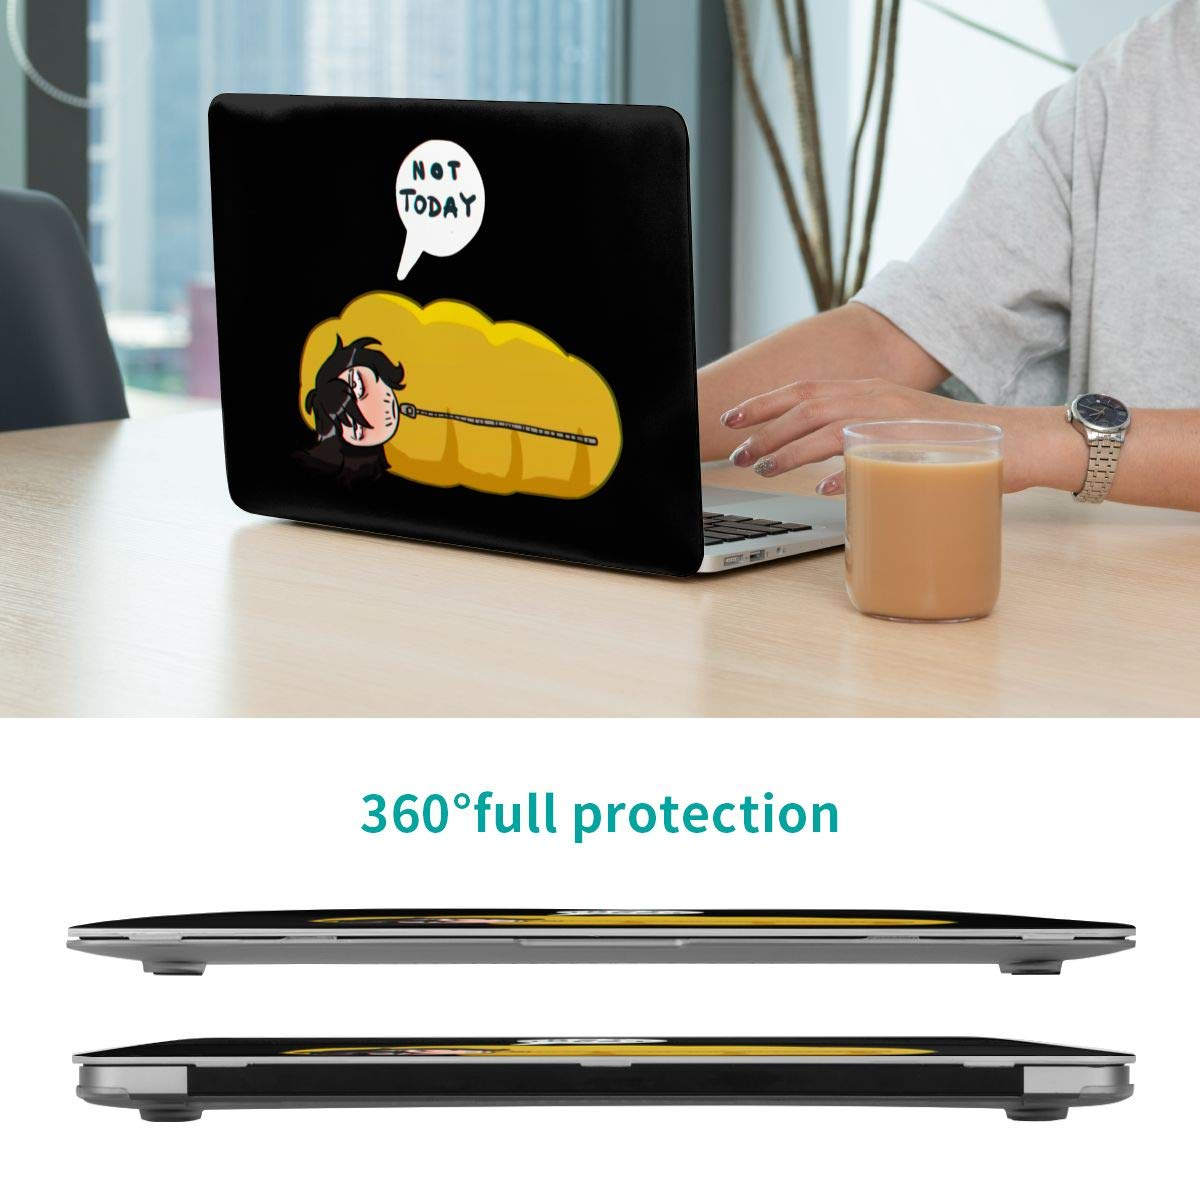 Plastic Hard Shell Laptop case Cover for MacBook Air 13-inch Watkinsmarket My Hero Academia MacBook Air 13-inch Protective case